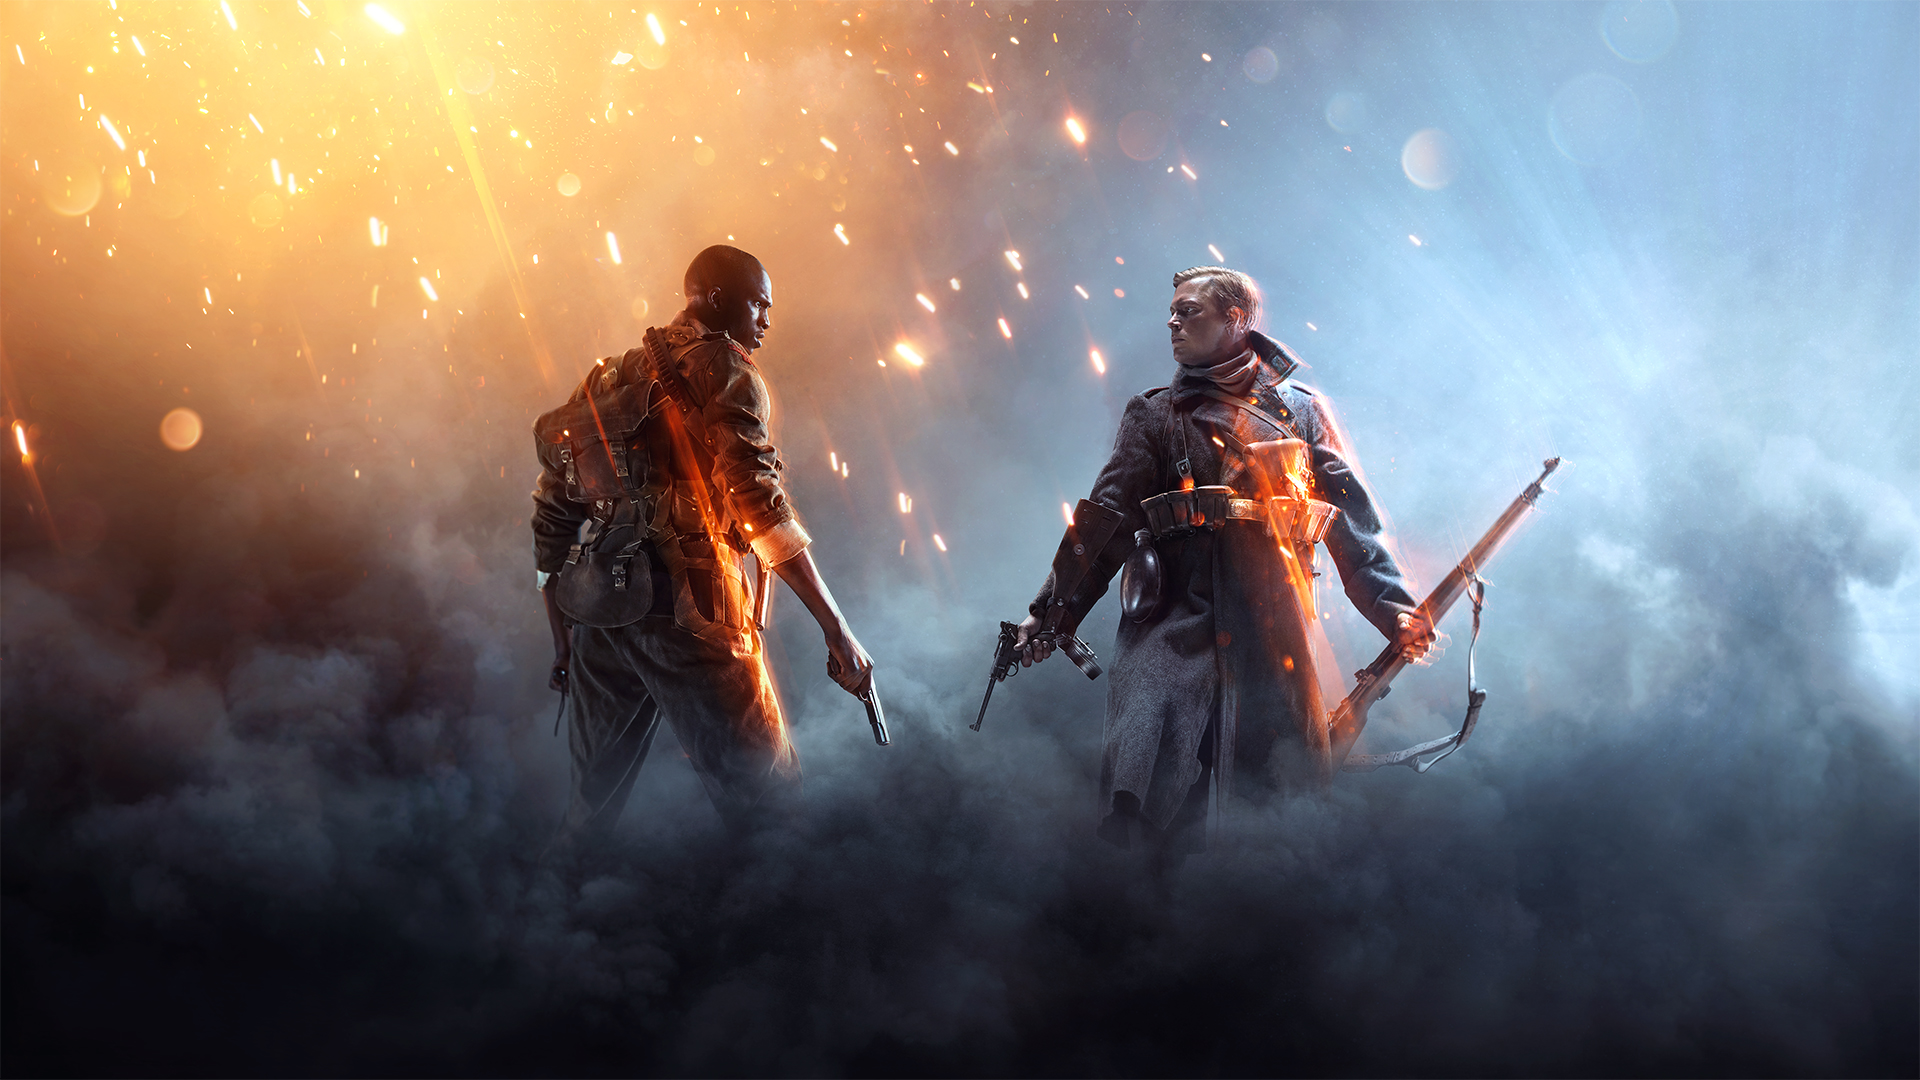 Battlefield 1 Patrick Bach interview – 'Let's reinvent Battlefield from the ground-up'